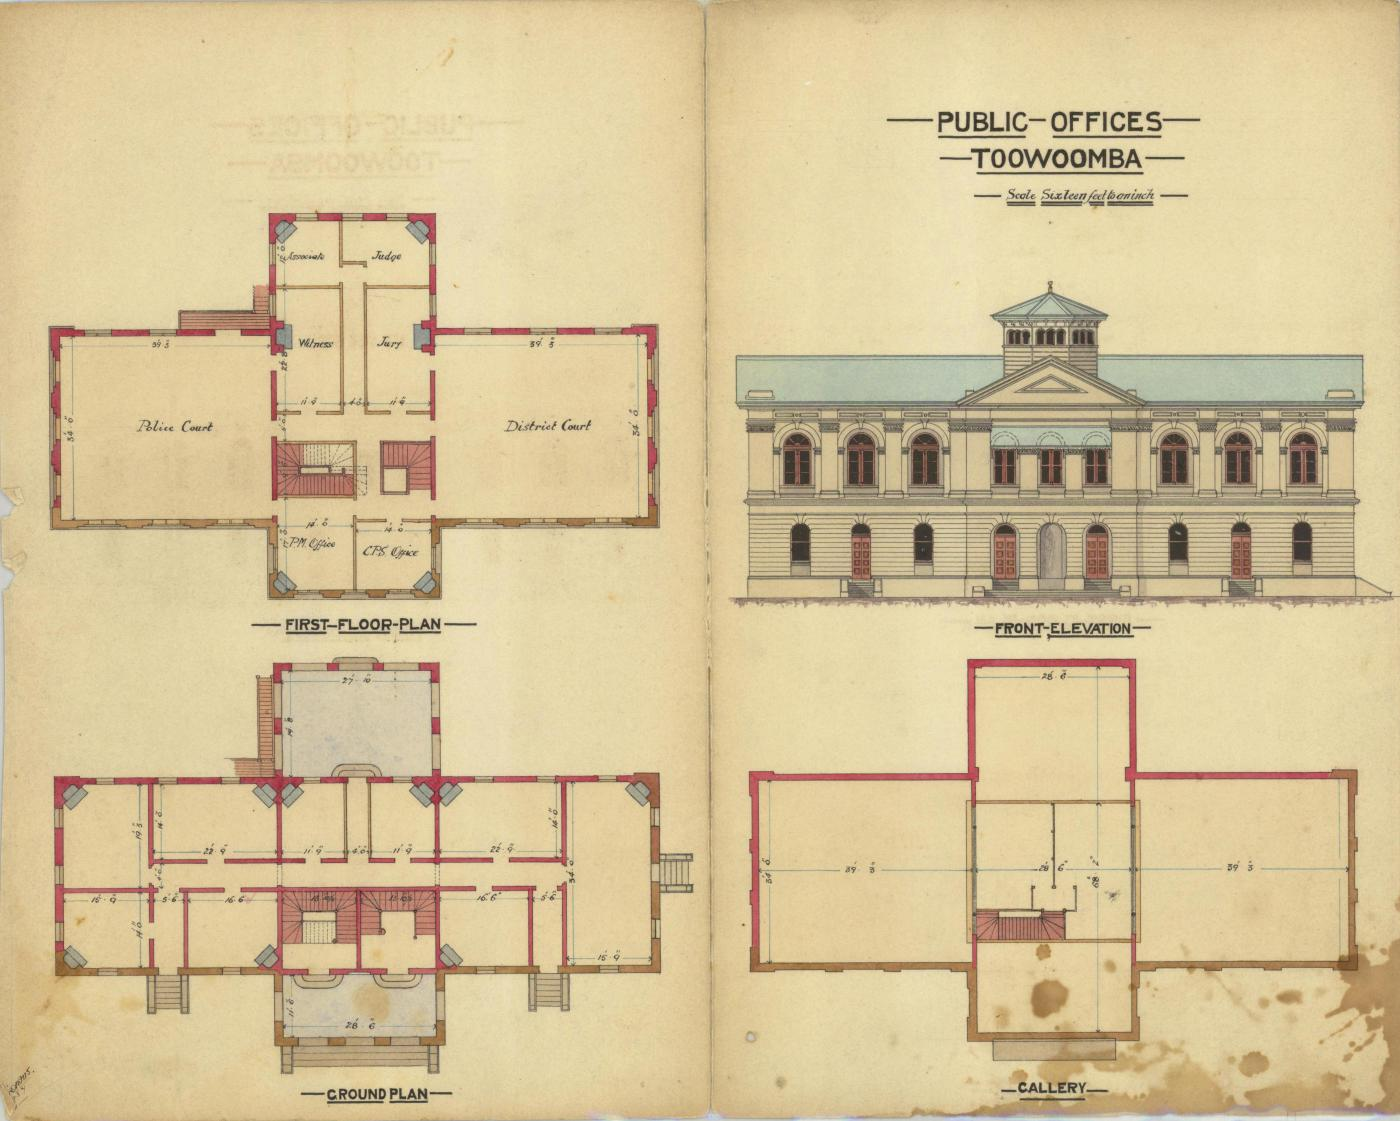 Architectural drawing of the Public Offices, Toowoomba